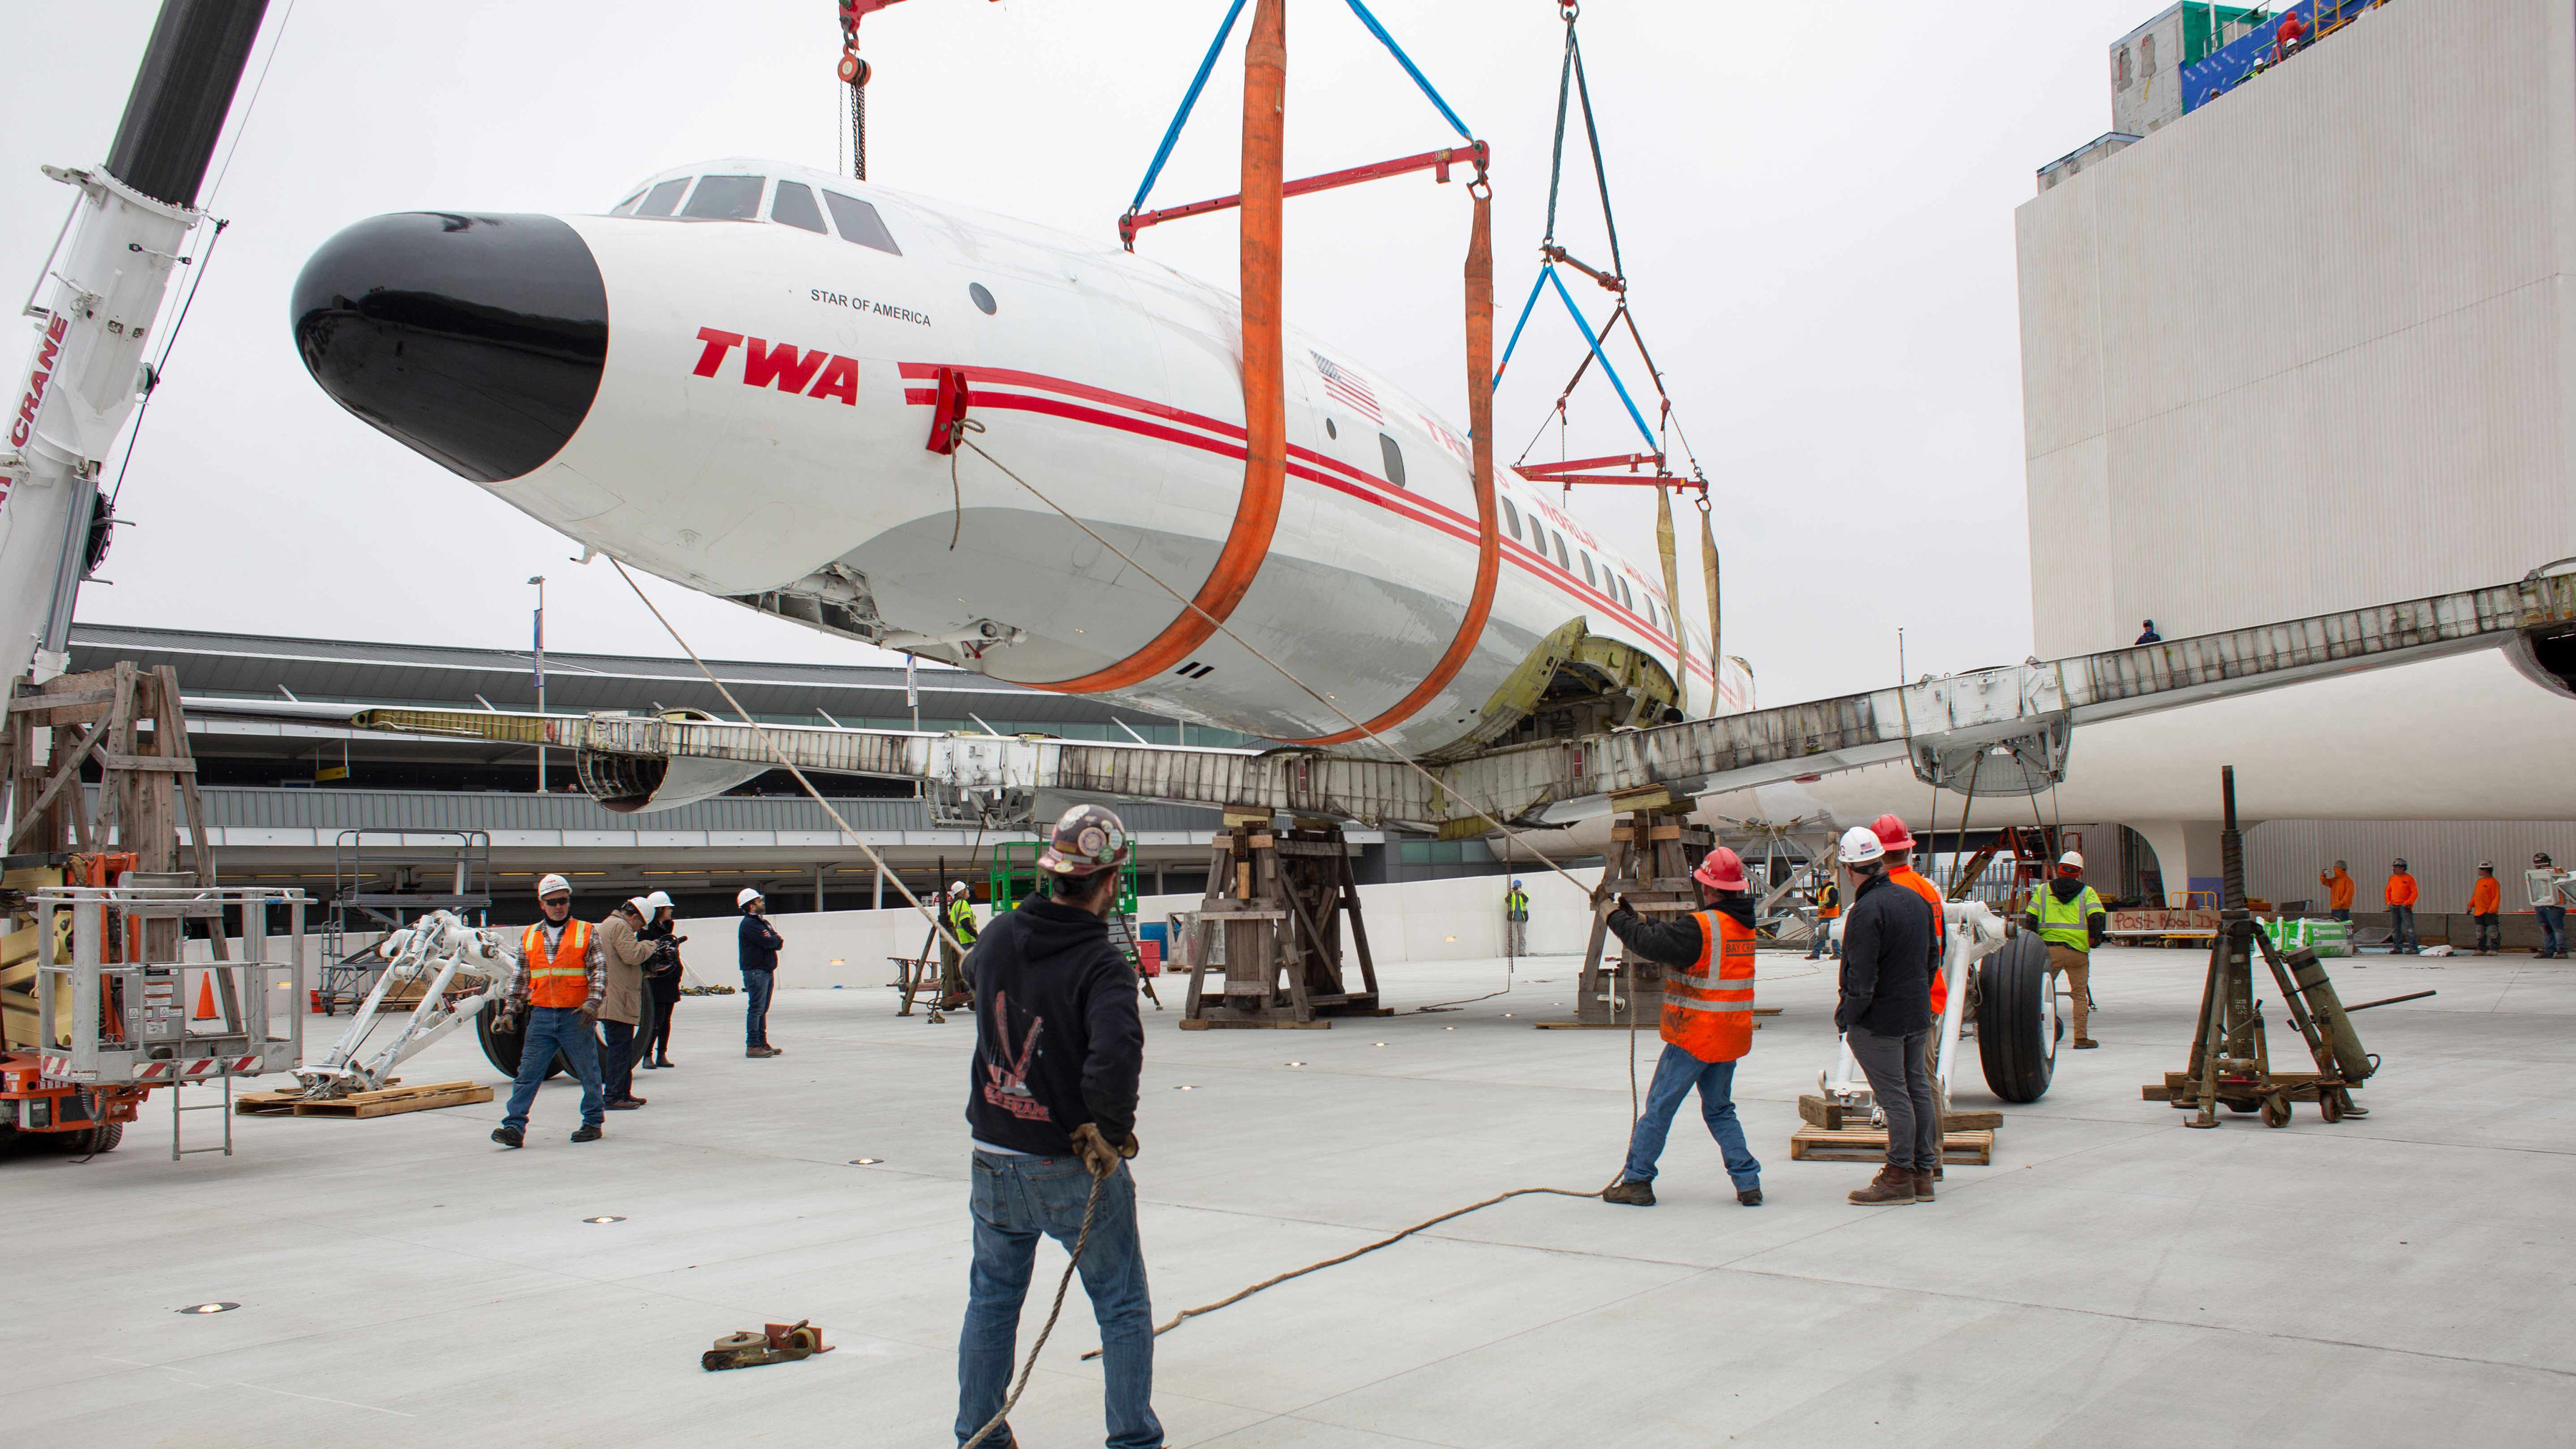 TWA Hotel Connie Crane